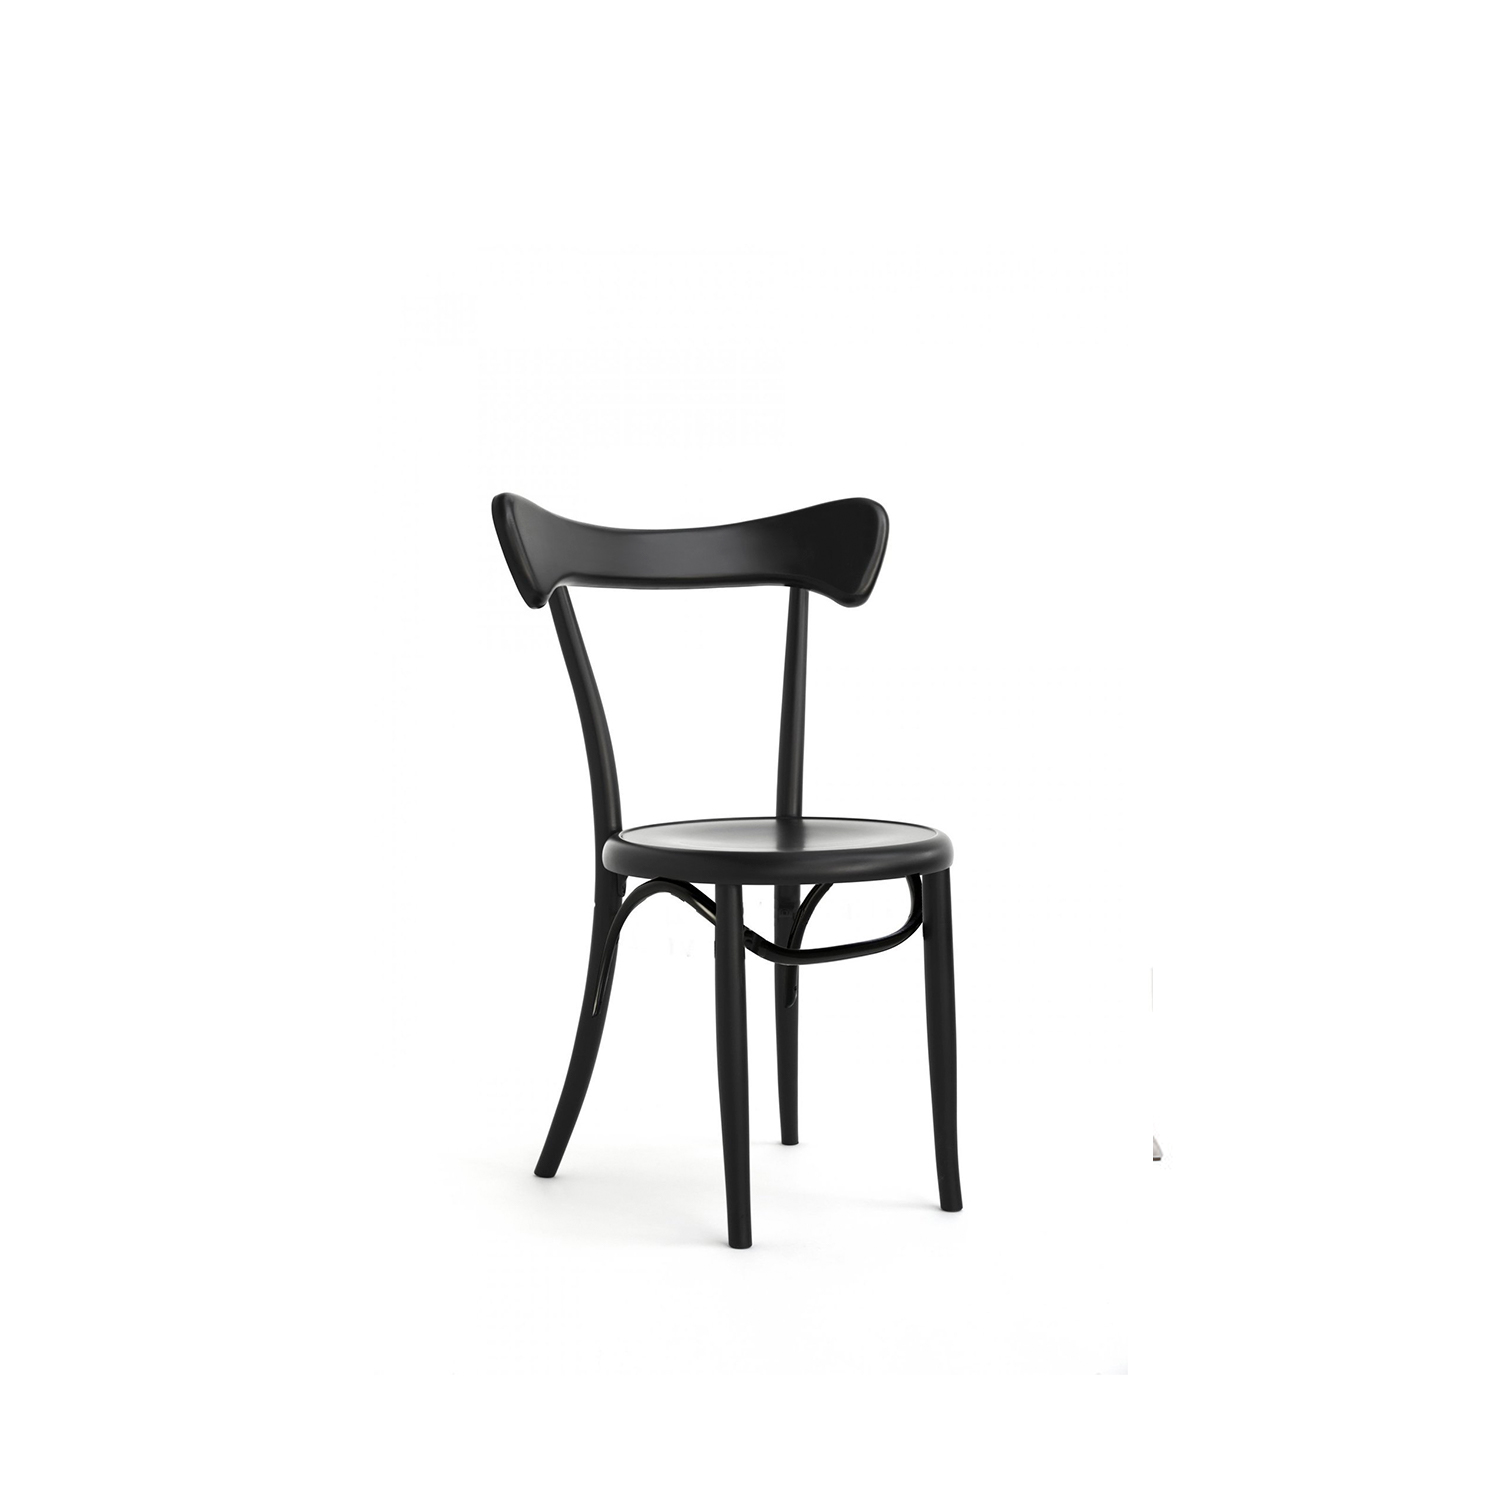 Cafestuhl Chair Upholstered - This elegant chair combines the traditional bent beechwood of Viennese-styled furniture with an ergonomic and sinuous backrest. Either arranged in multiples or combined with the Bodystuhl and the Bistrostuhl around a modern table, this exquisite chair will imbue any home or elegant restaurant with character and refined taste. | Matter of Stuff